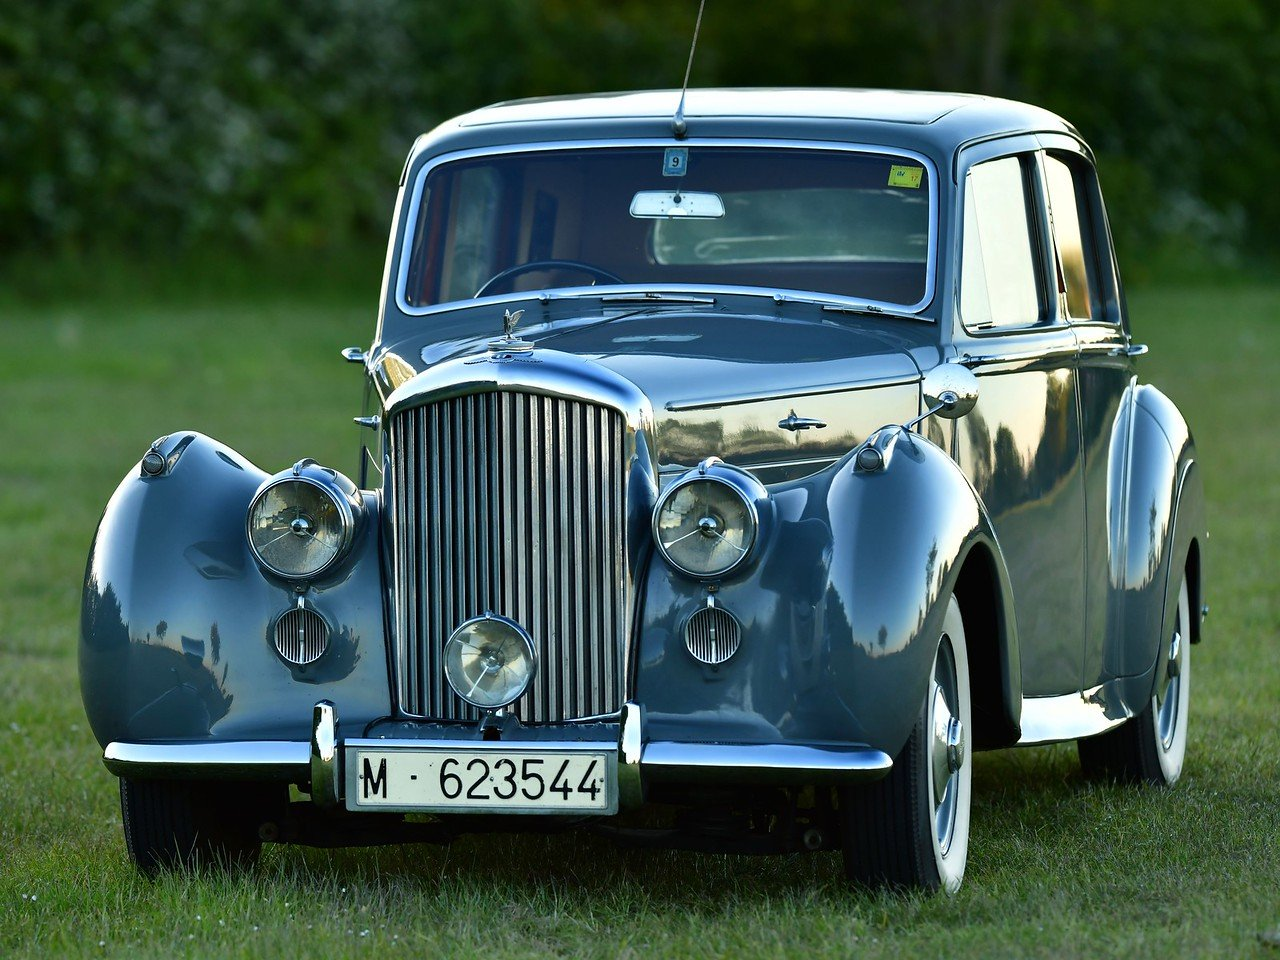 1949 Bentley MKVI Standard Steel Saloon For Sale (picture 1 of 6)